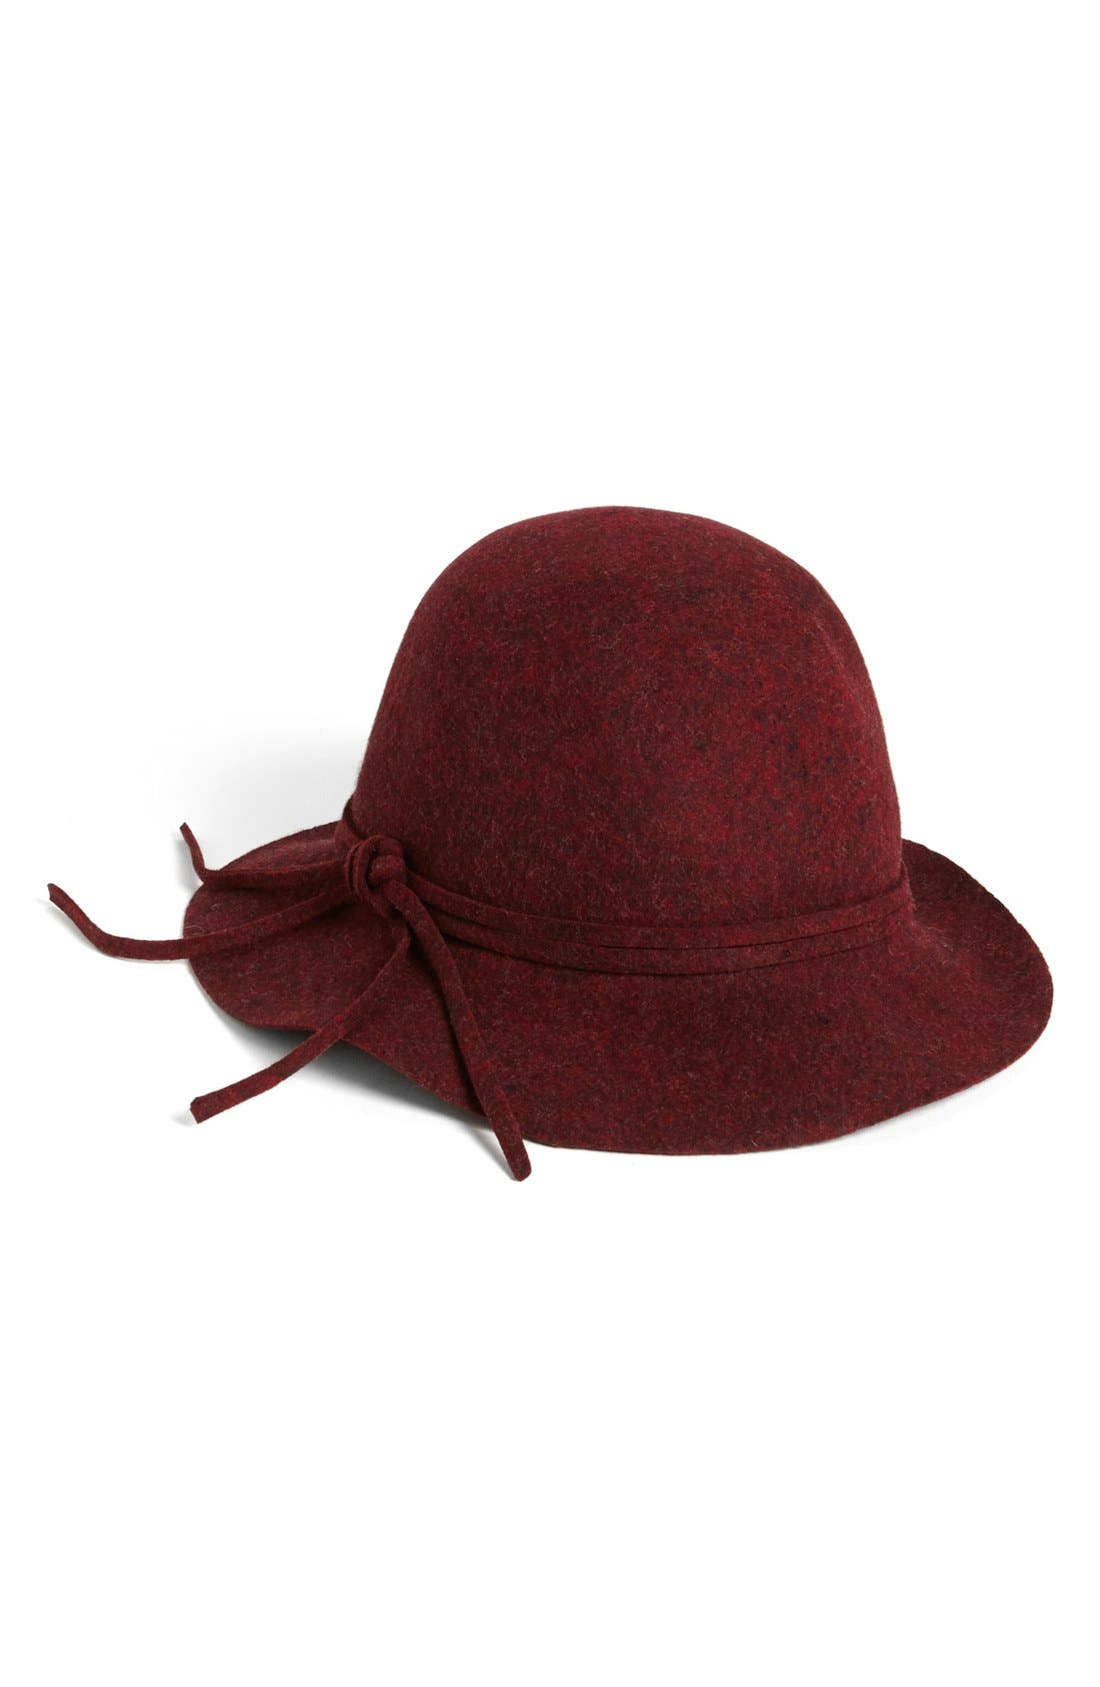 Alternate Image 1 Selected - Nordstrom Felt Hat